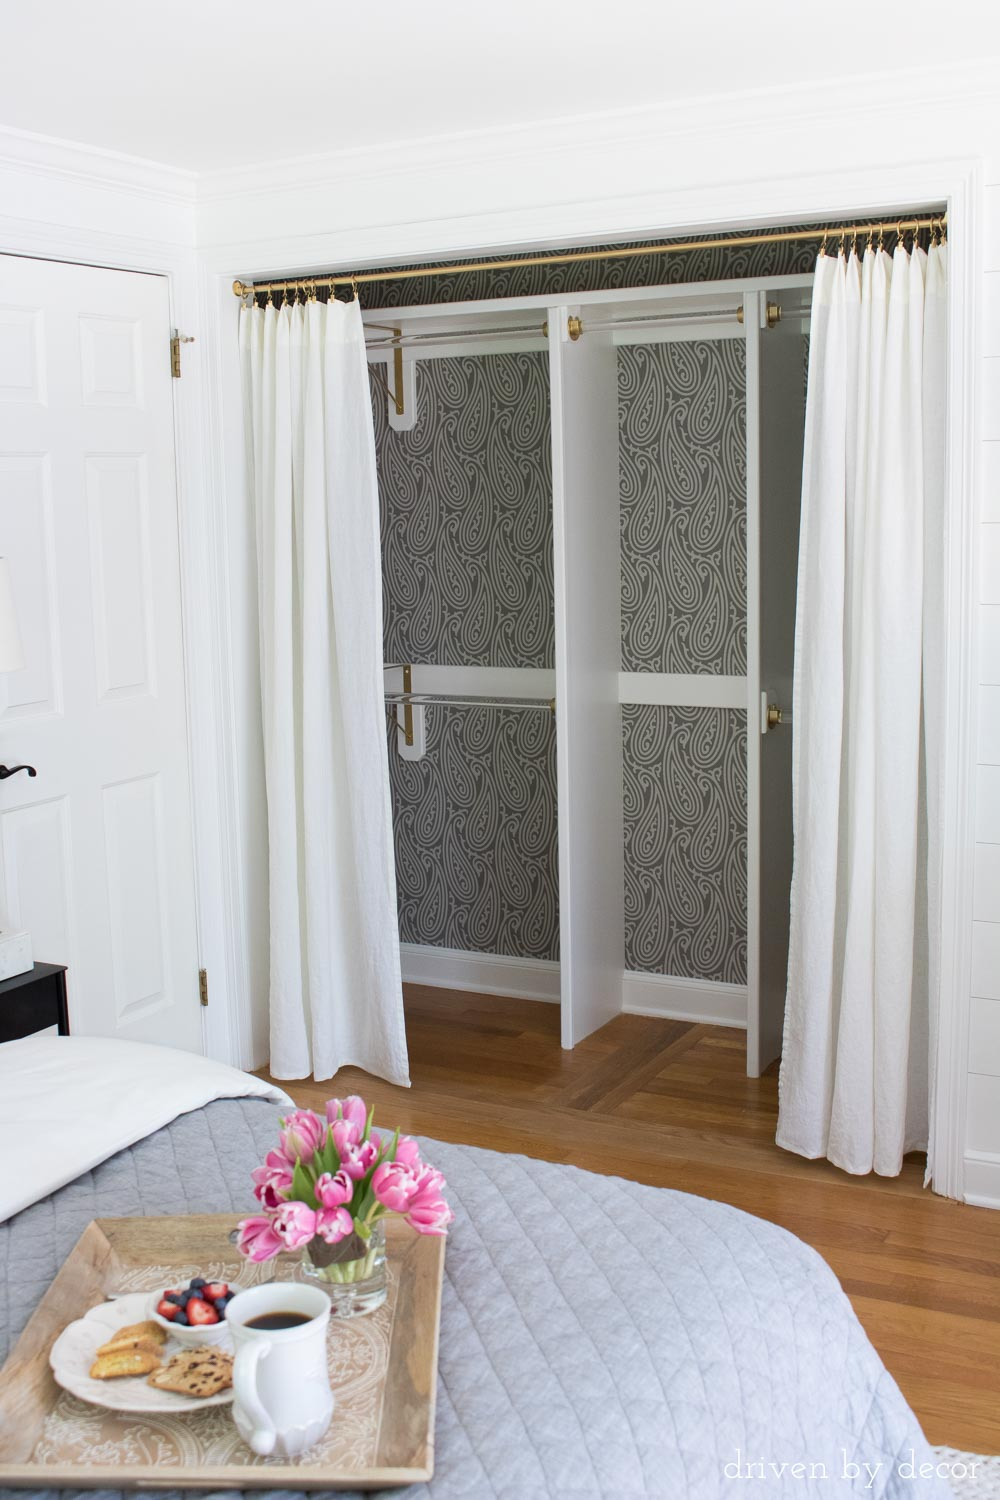 Love the idea of adding wallpaper to the back of a closet or pantry!